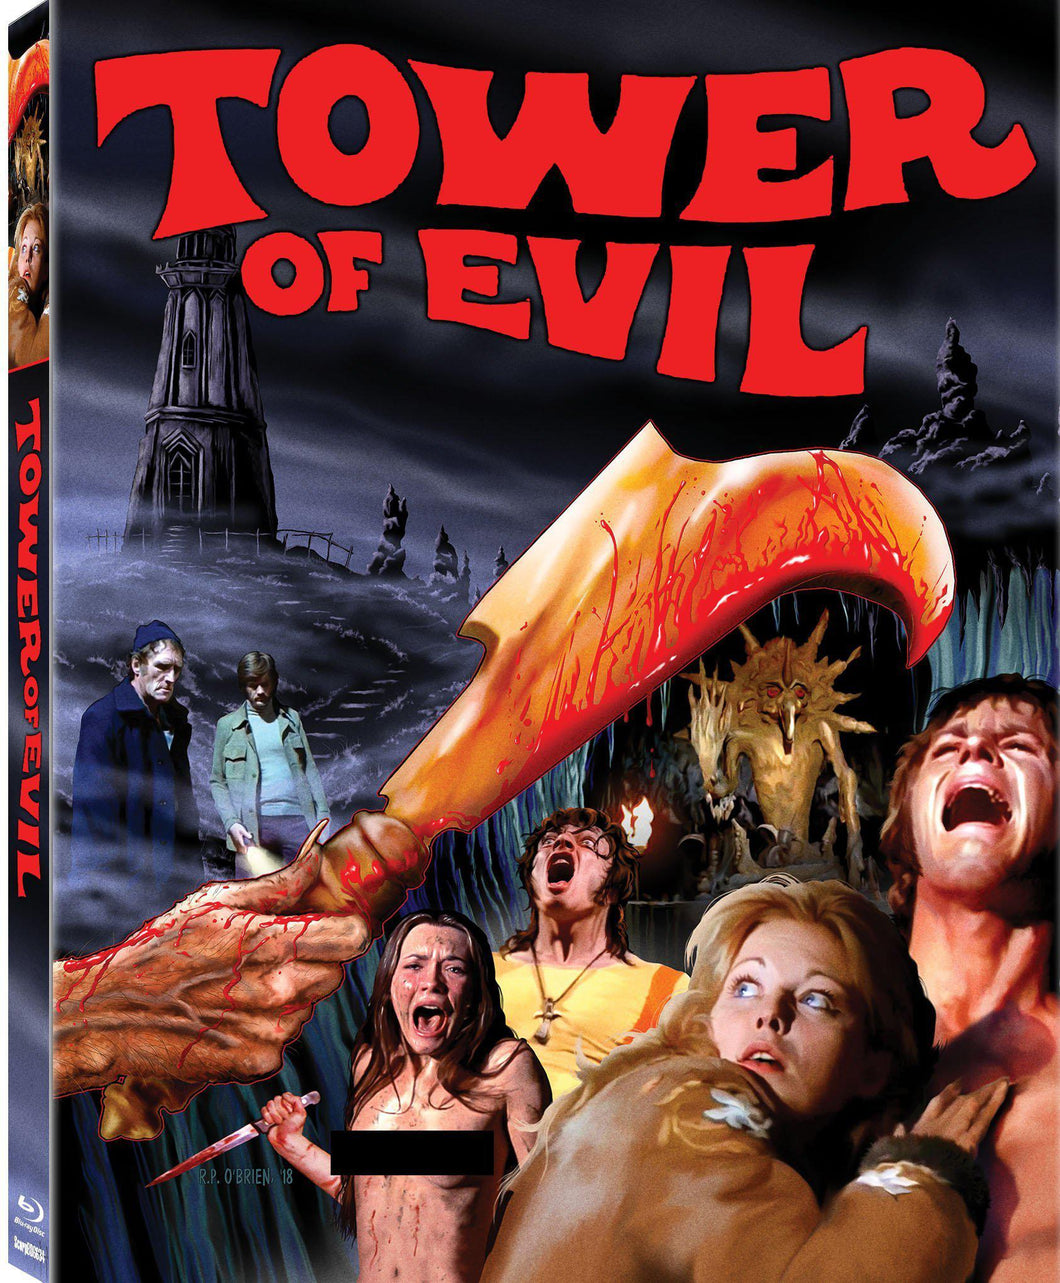 Tower of Evil (Blu-ray): Ronin Flix - Slipcover